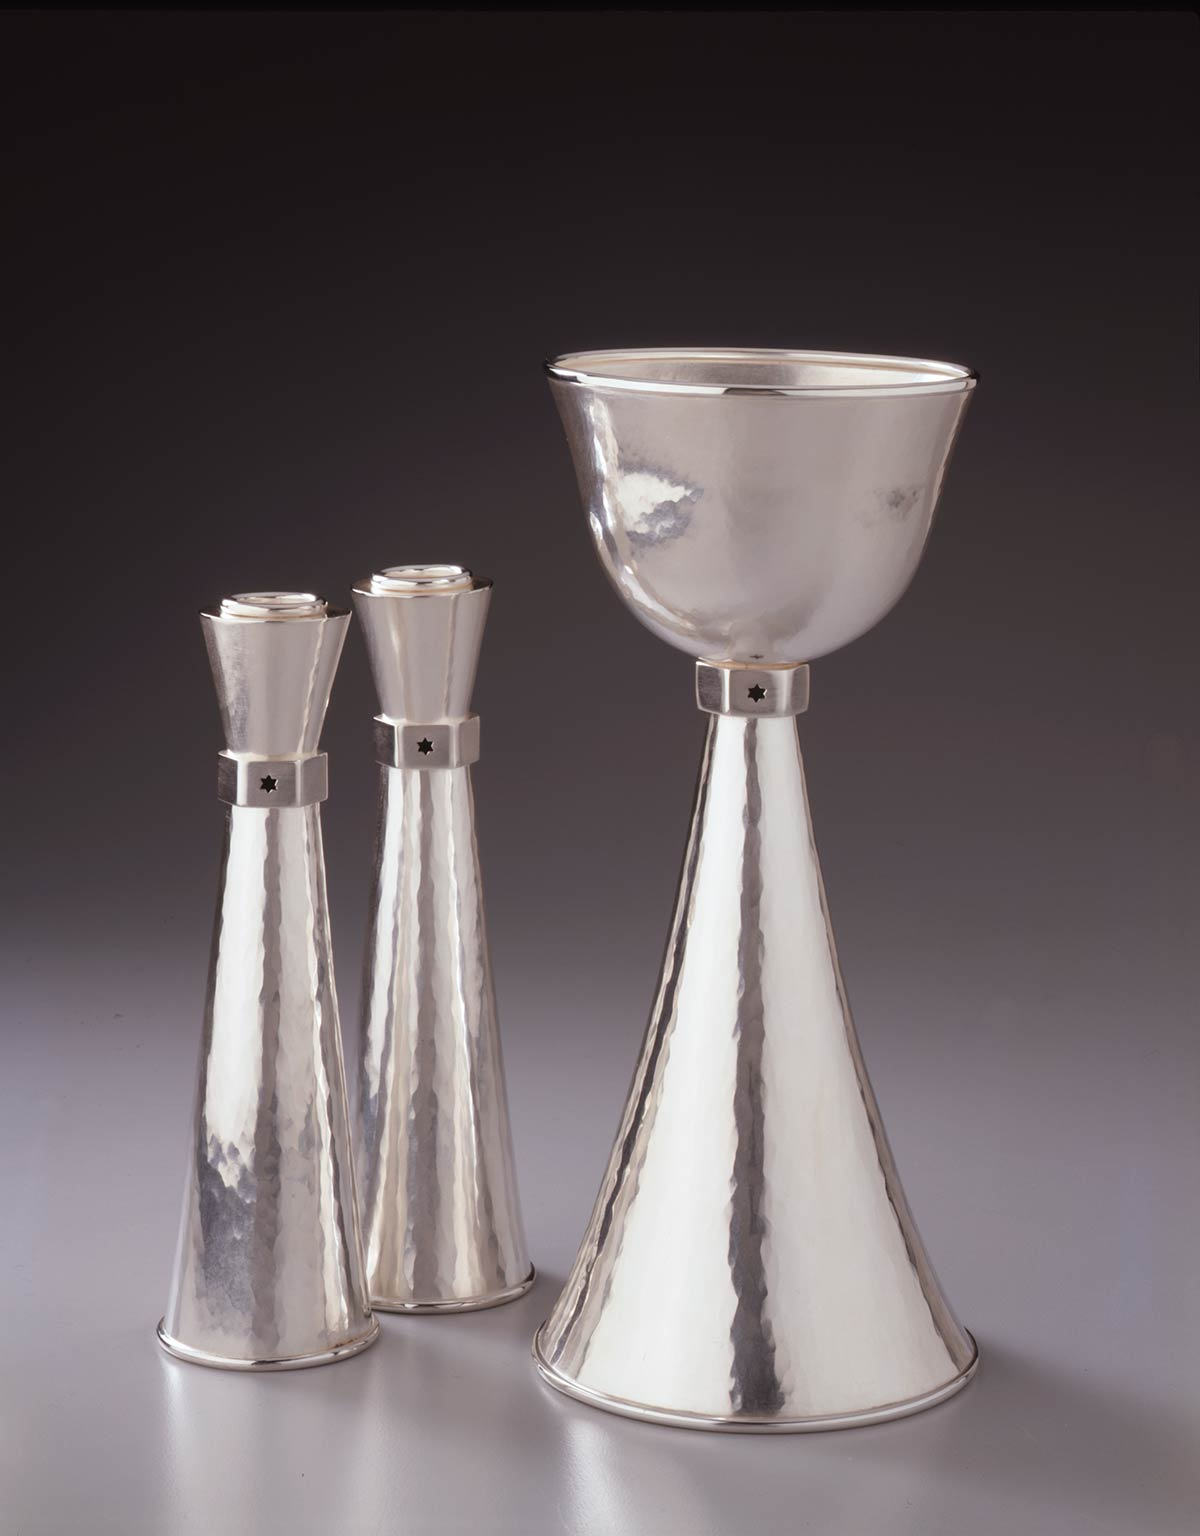 Kiddush Cup and Candlestick Holders